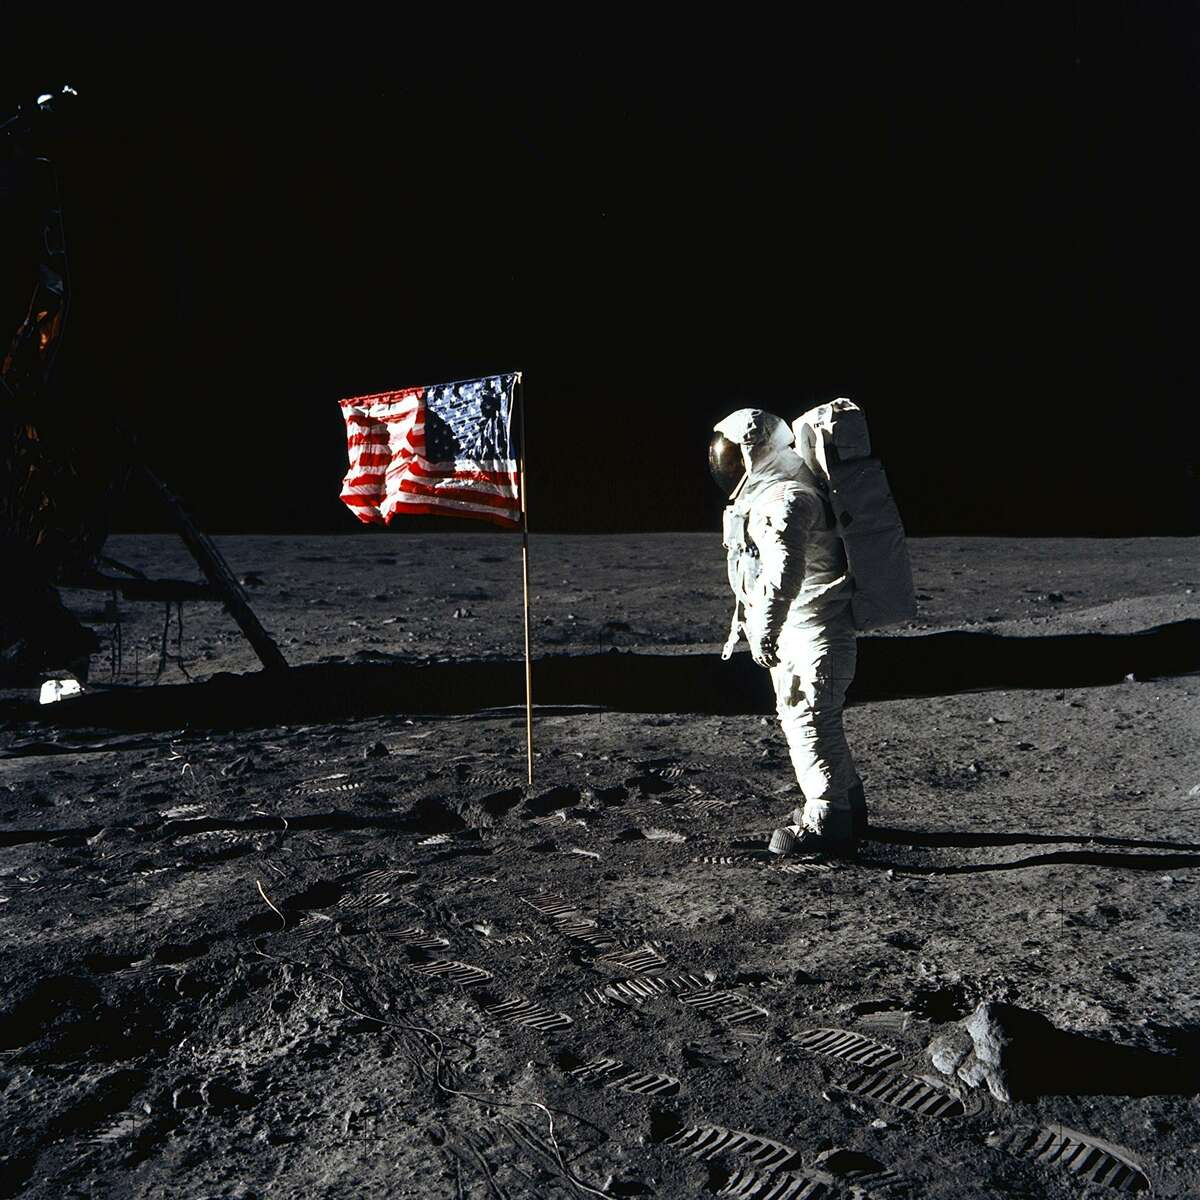 Astronaut Buzz Aldrin poses for a photograph beside the deployed United States flag during Apollo 11 on July 20, 1969. Astronaut Neil Armstrong took the photograph. >>> Click through to read incredible facts about the Apollo 11 mission